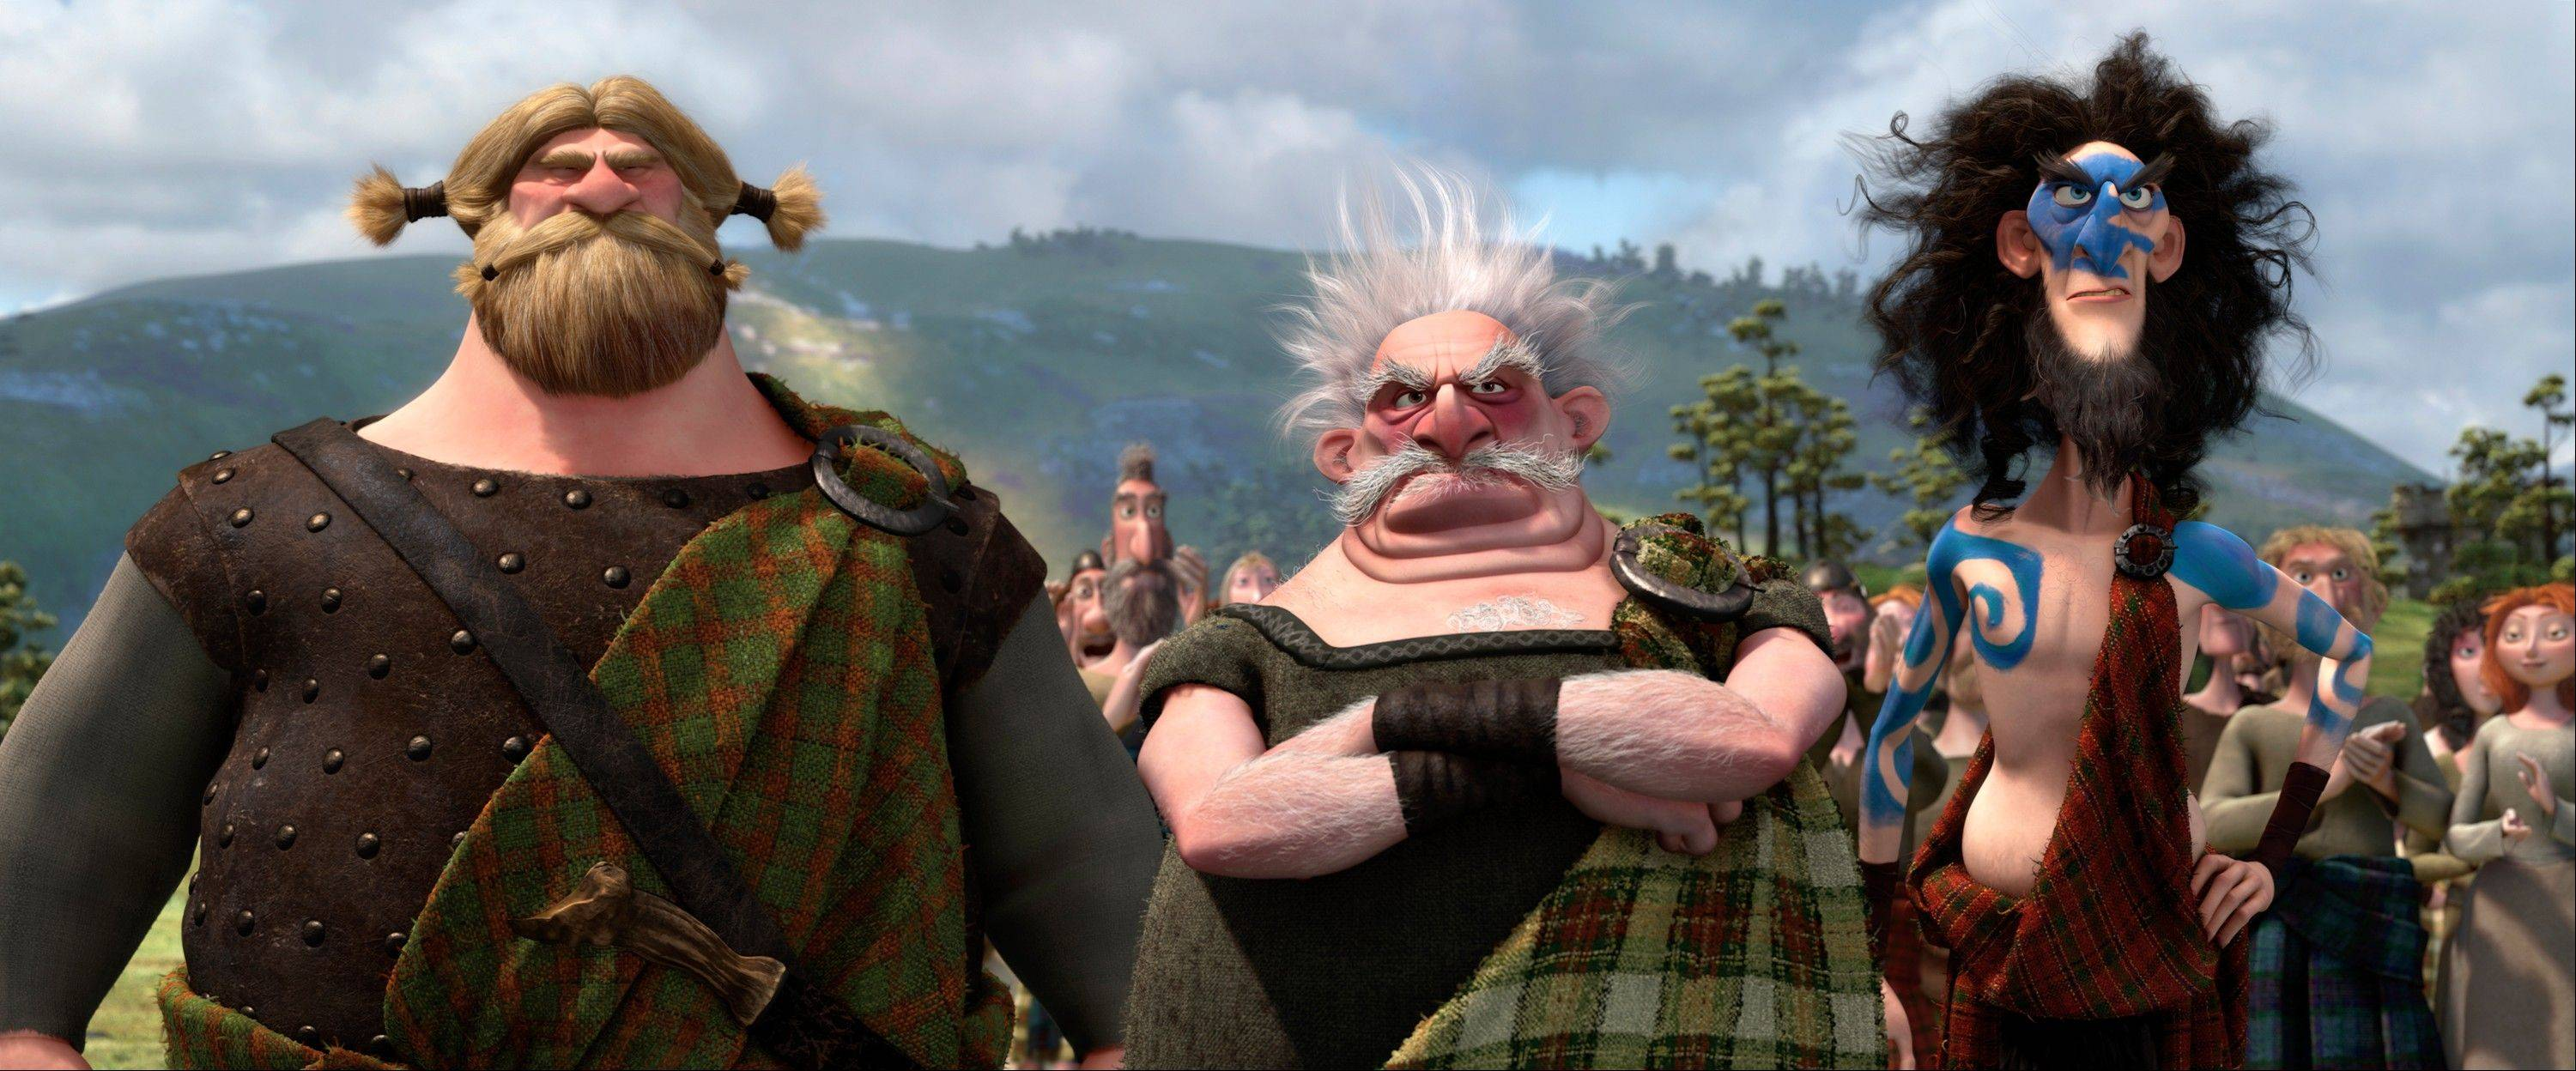 "Lord MacGuffin (voiced by Kevin McKidd), Lord Dingwal (voiced by Robbie Coltrane) and Lord MacIntosh (voiced by Craig Ferguson) hunt for a daughter-in-law in Pixar's ""Brave."""